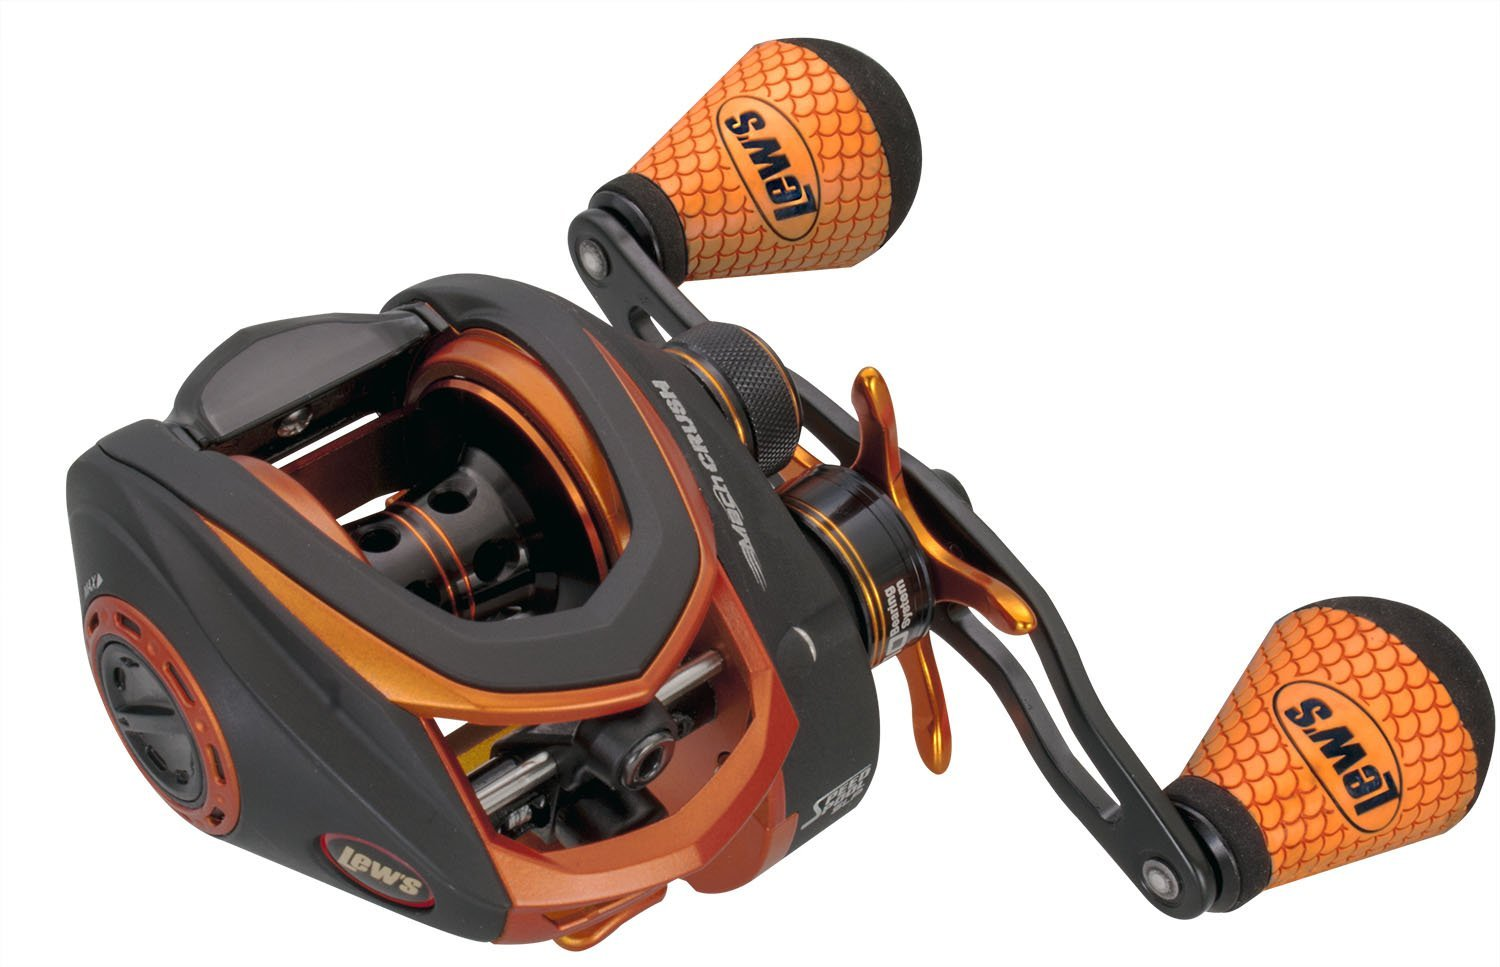 Lews Mach Crush Speed Spool Baitcast Reel